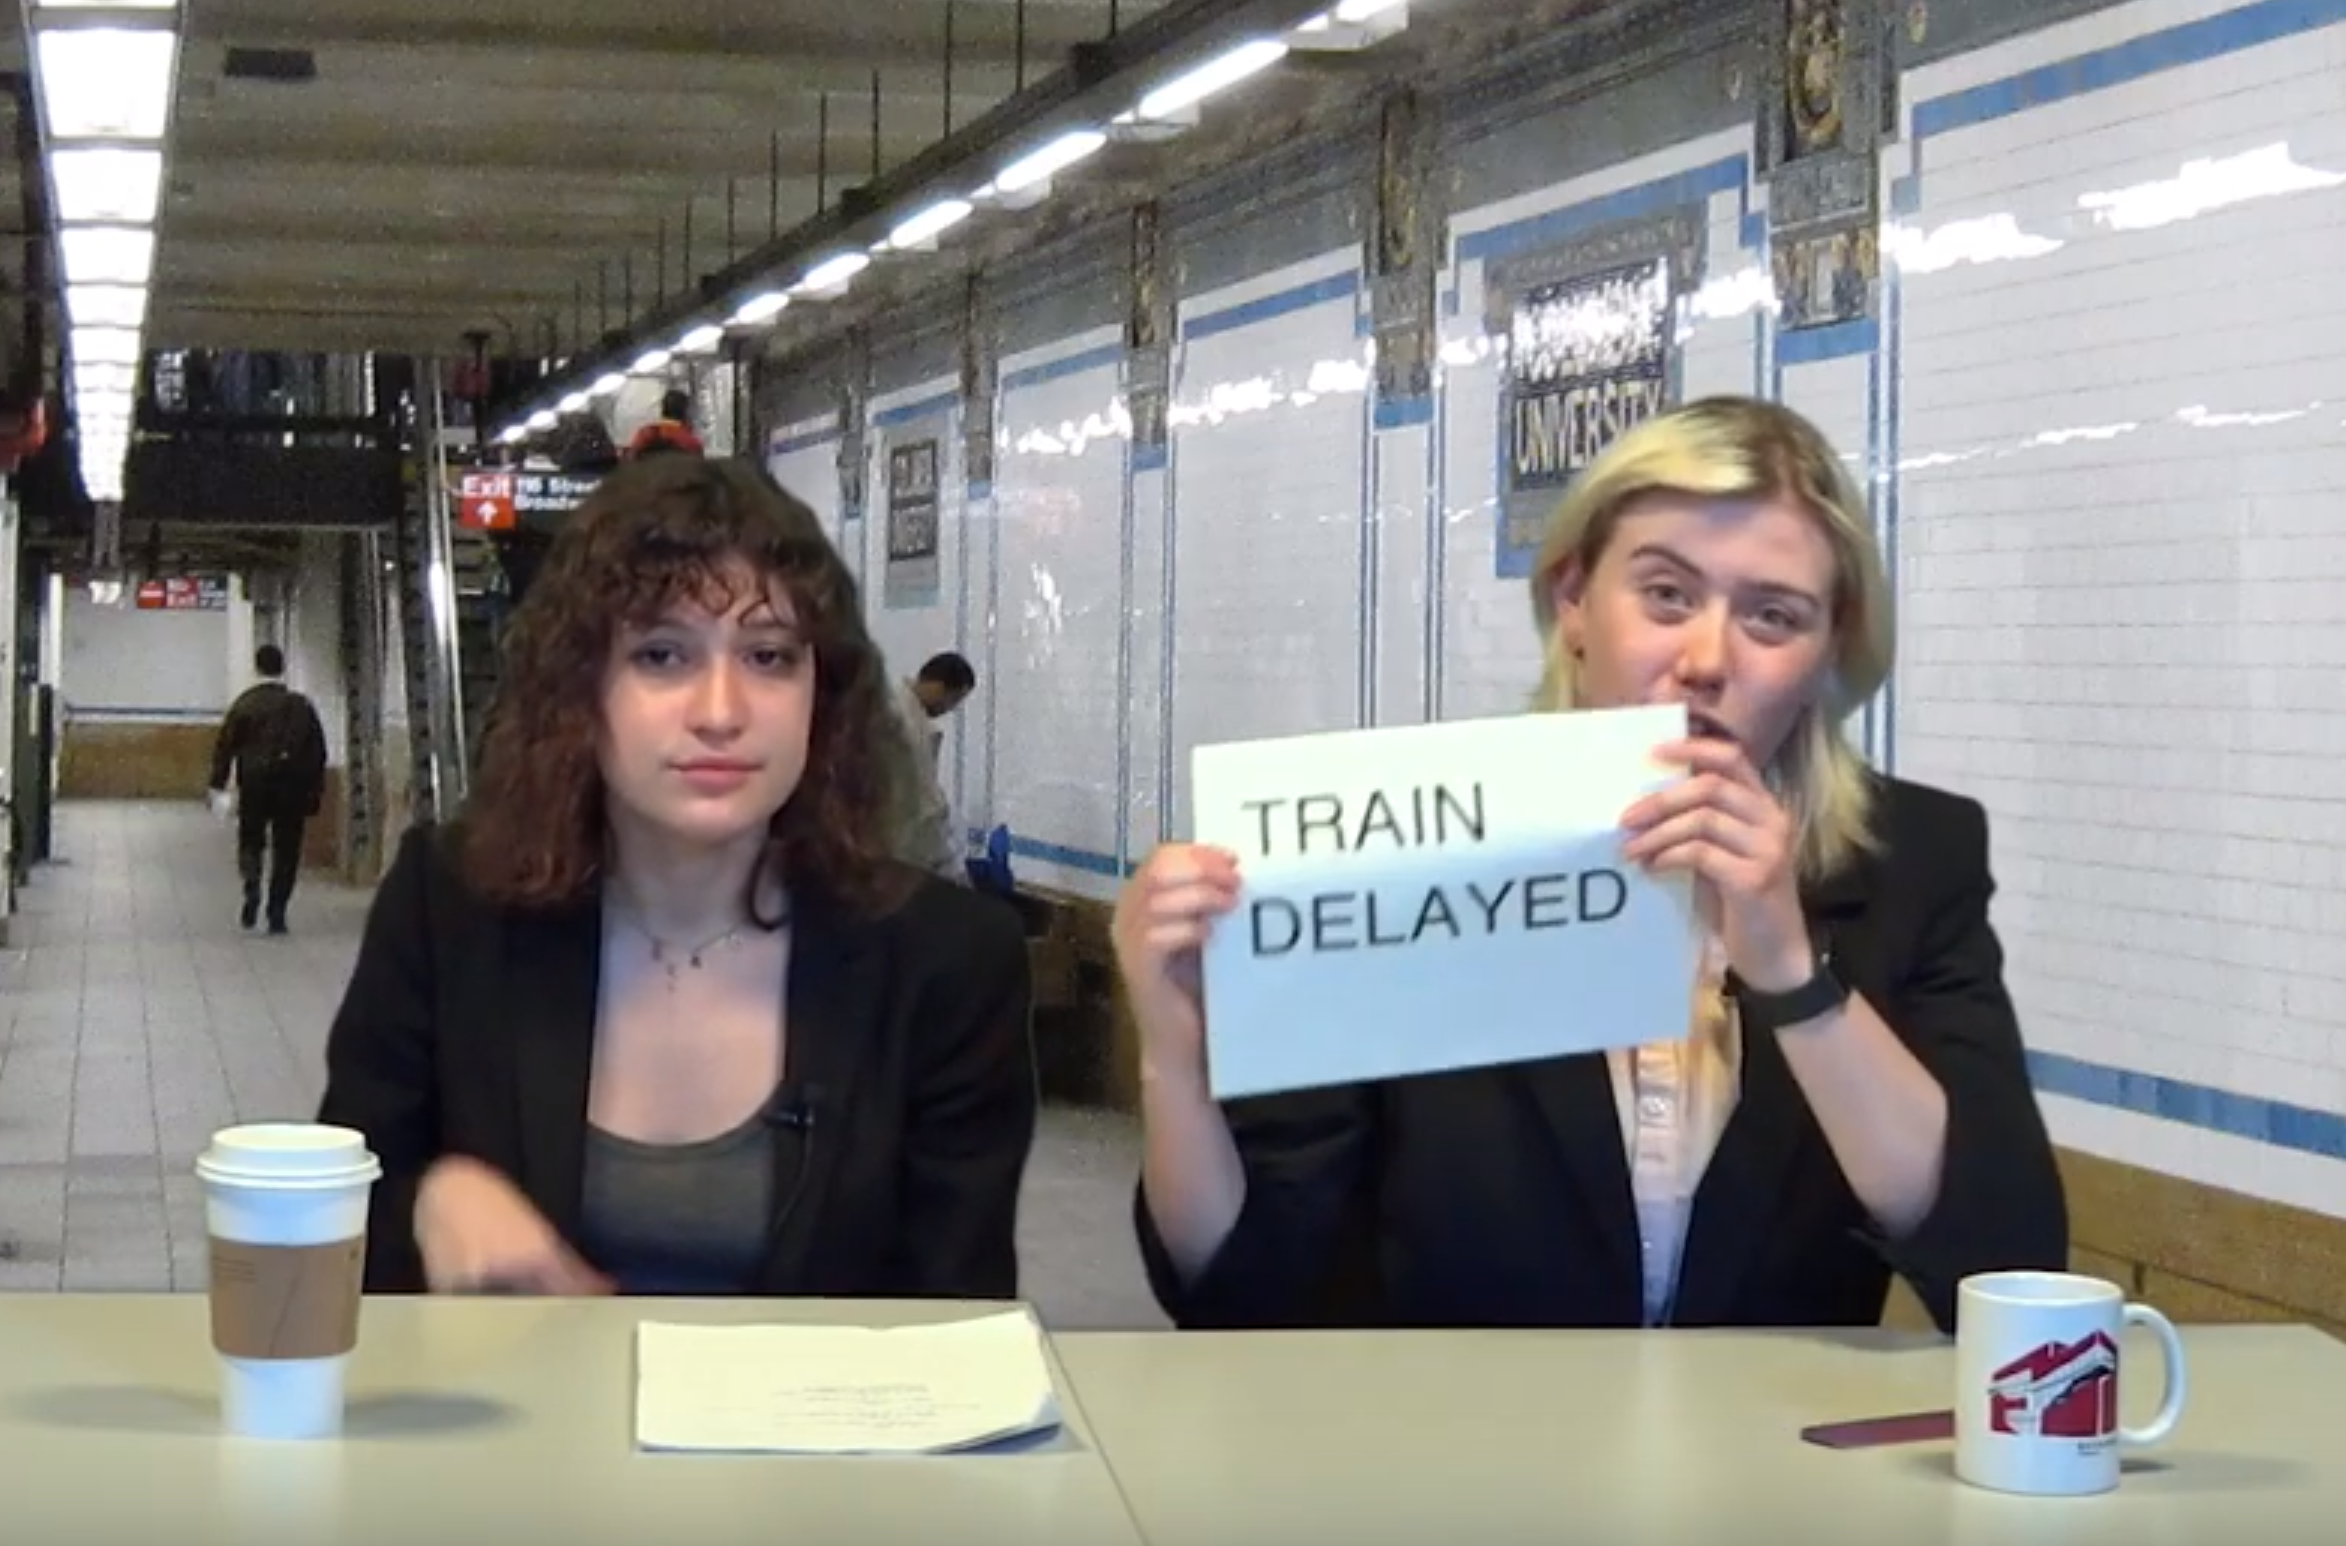 Students sitting at desk at Columbia subway station; one is holding a sign that says 'train delayed'